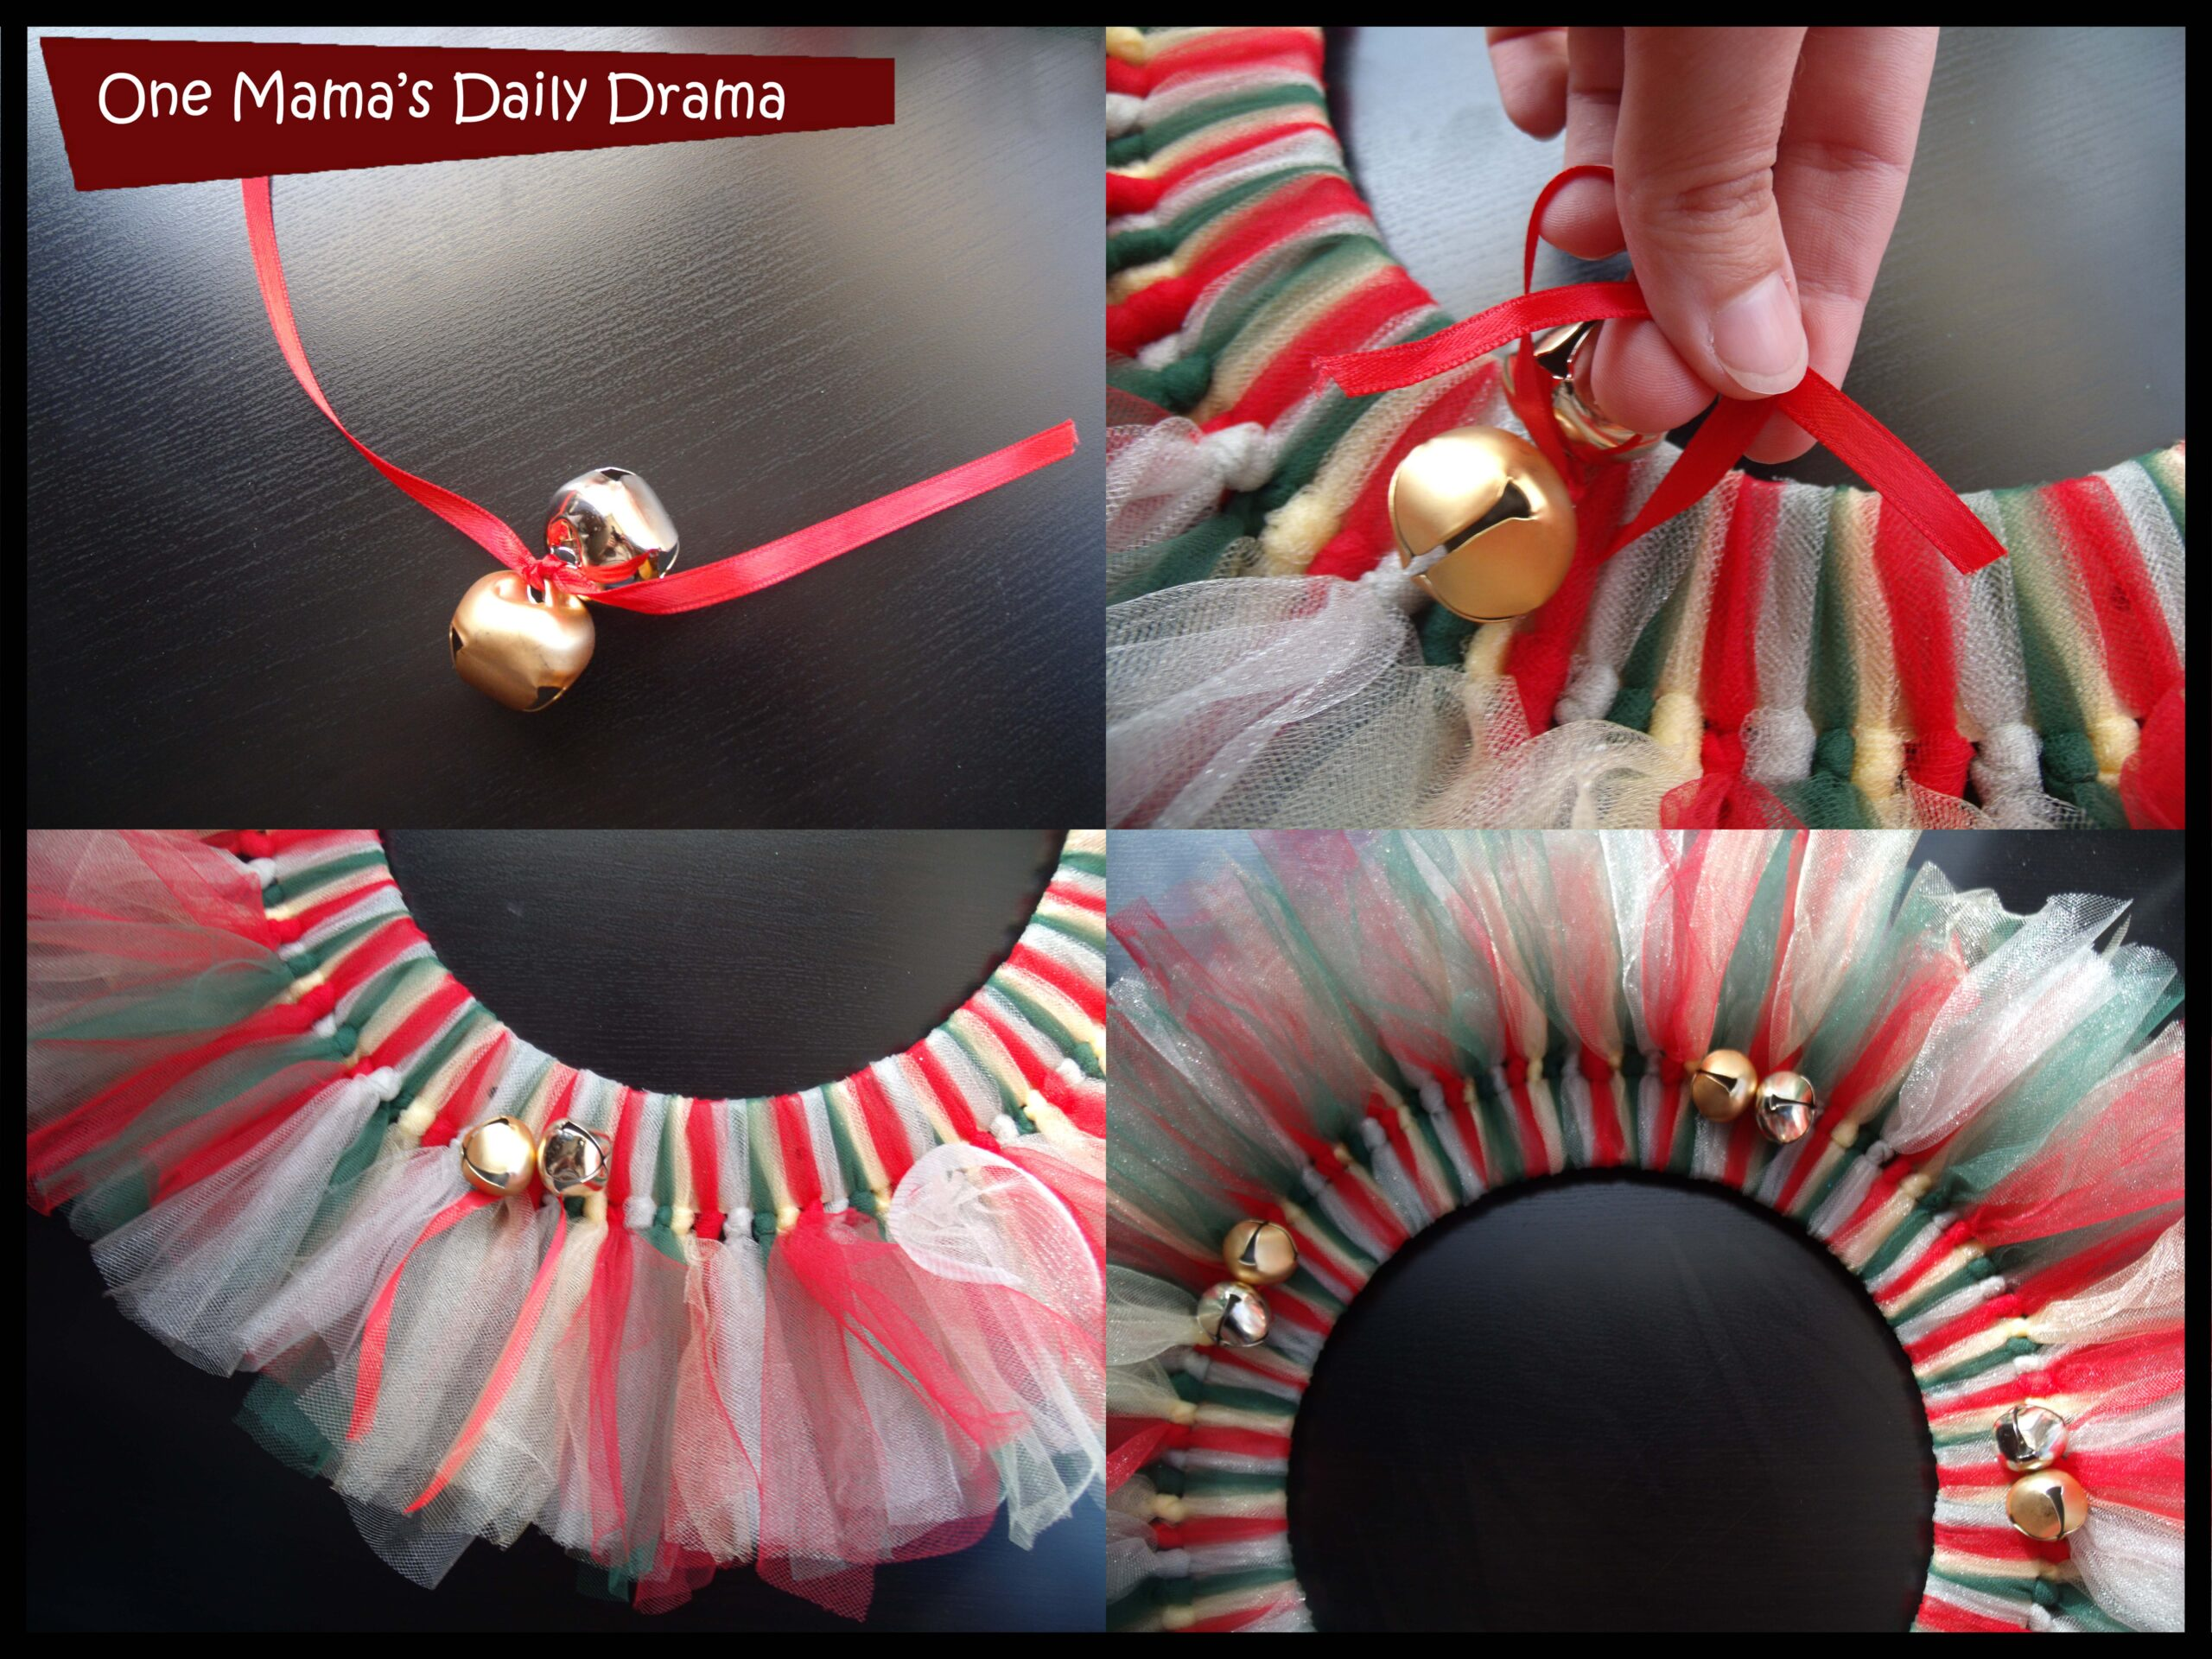 Christmas tulle wreath: string the jingle bells between the tulle pieces.